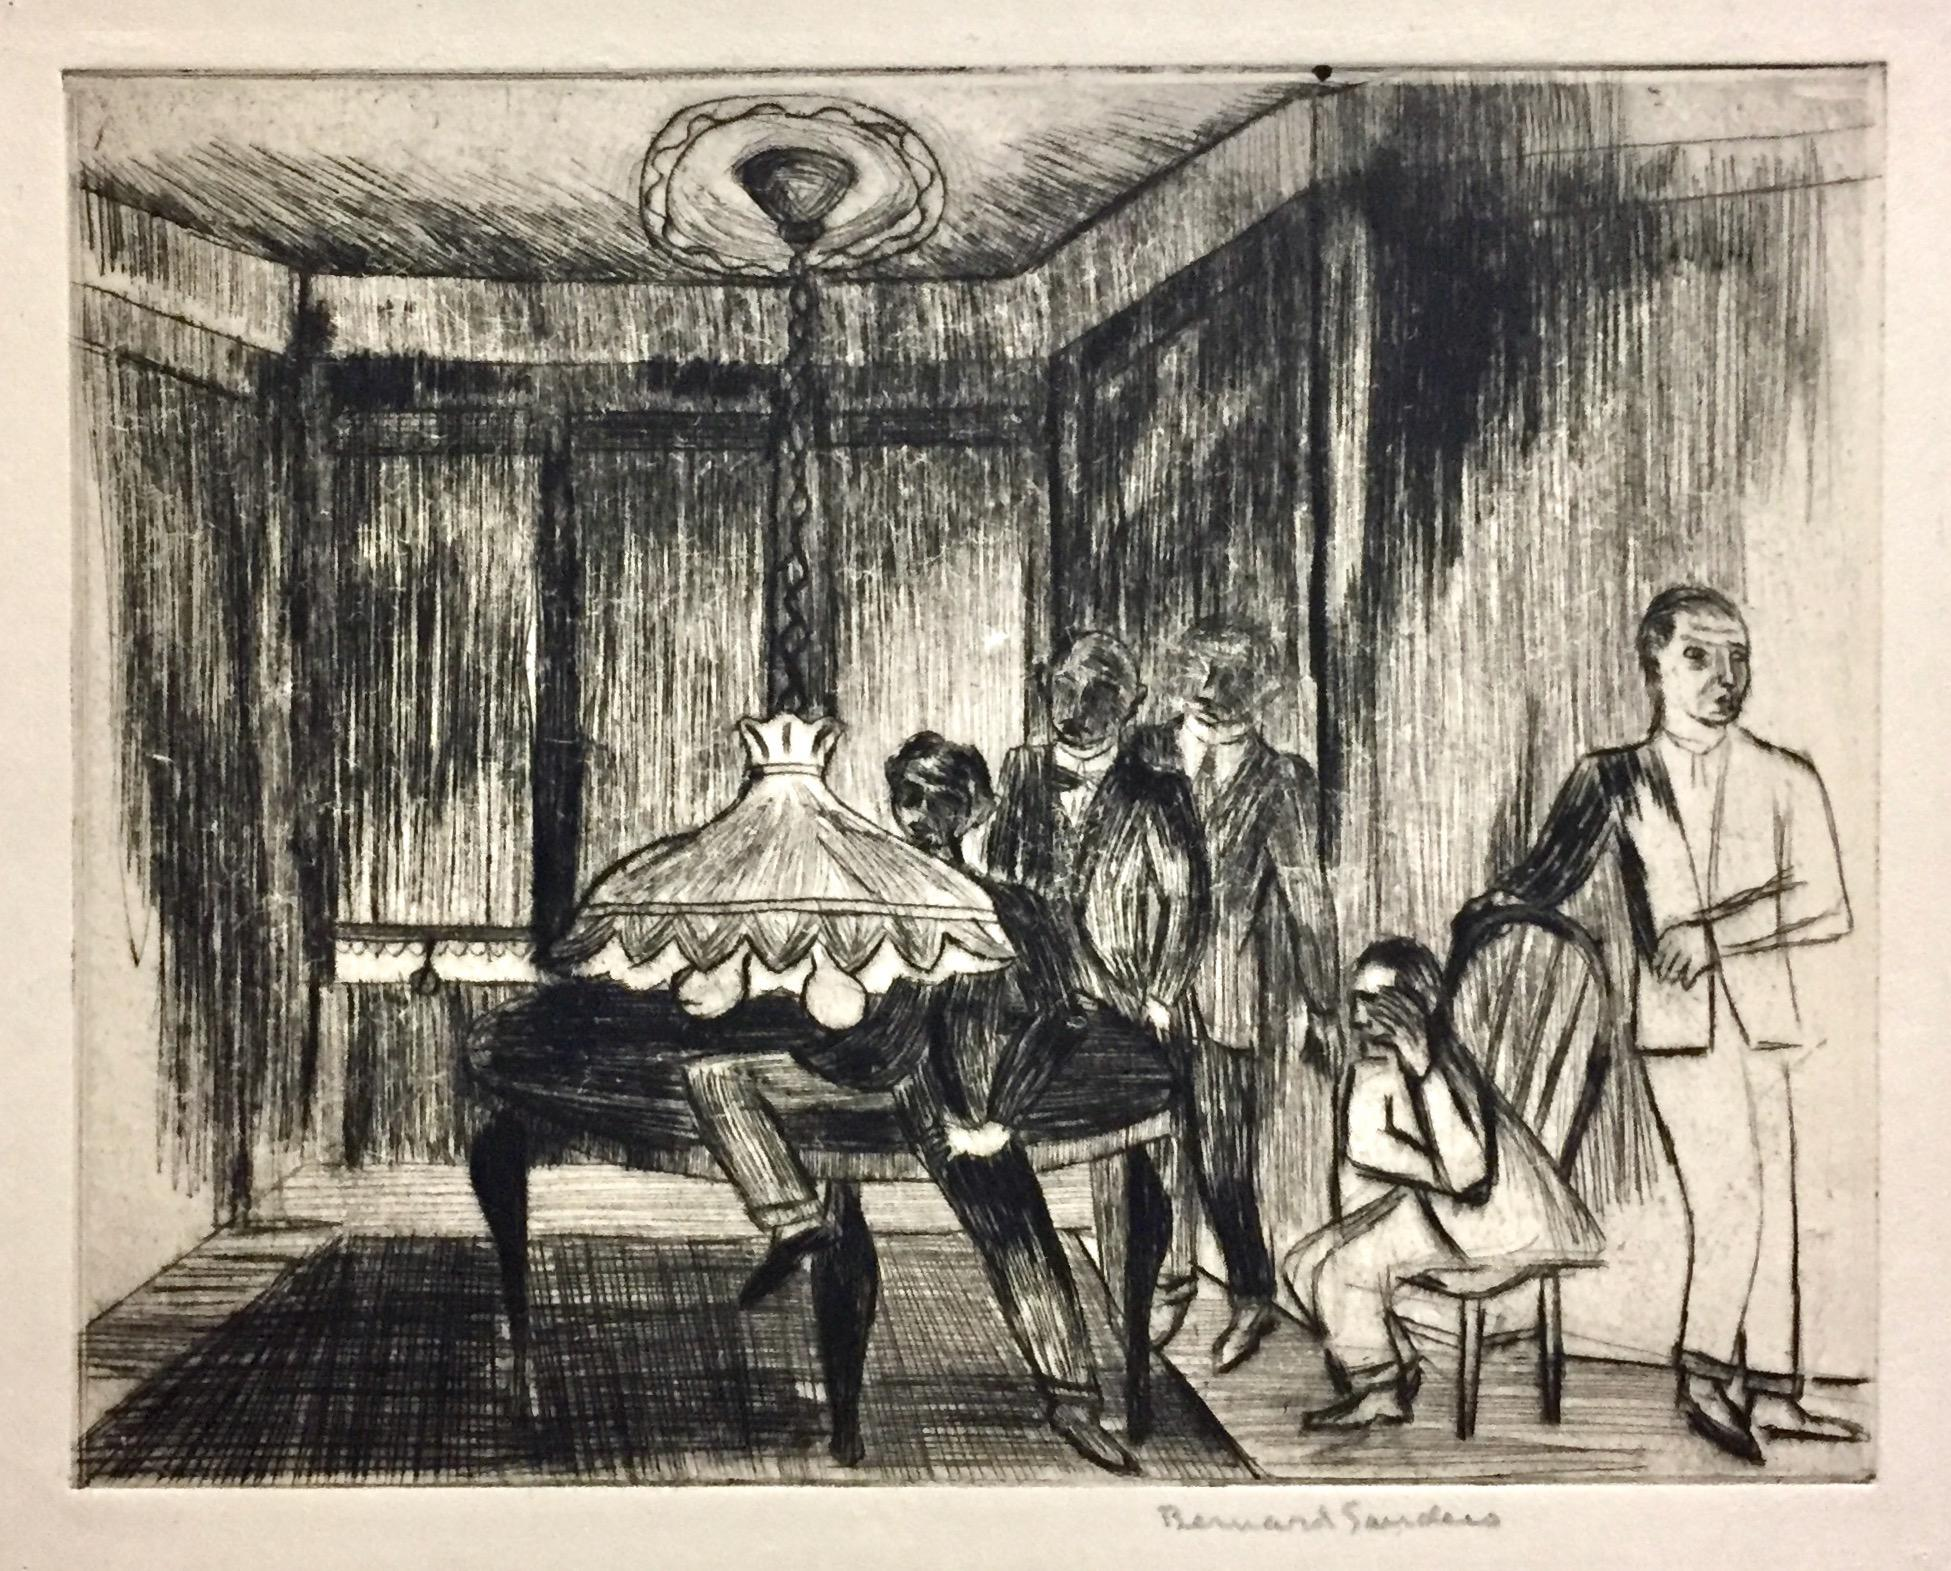 (Interior with Five Men)